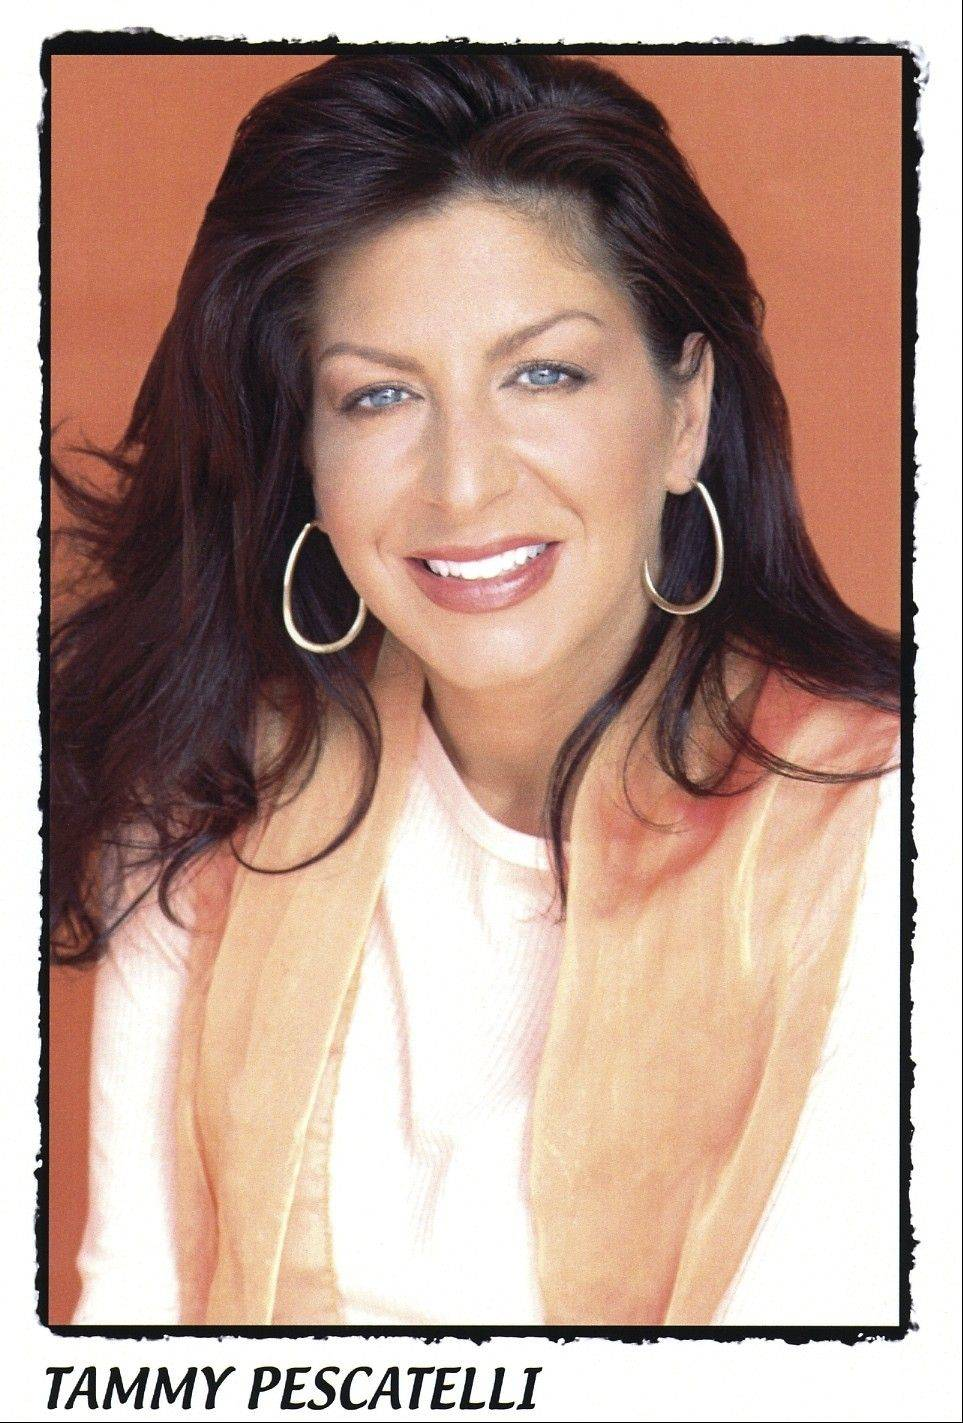 Tammy Pescatelli headlines at The Improv Comedy Showcase in Schaumburg.